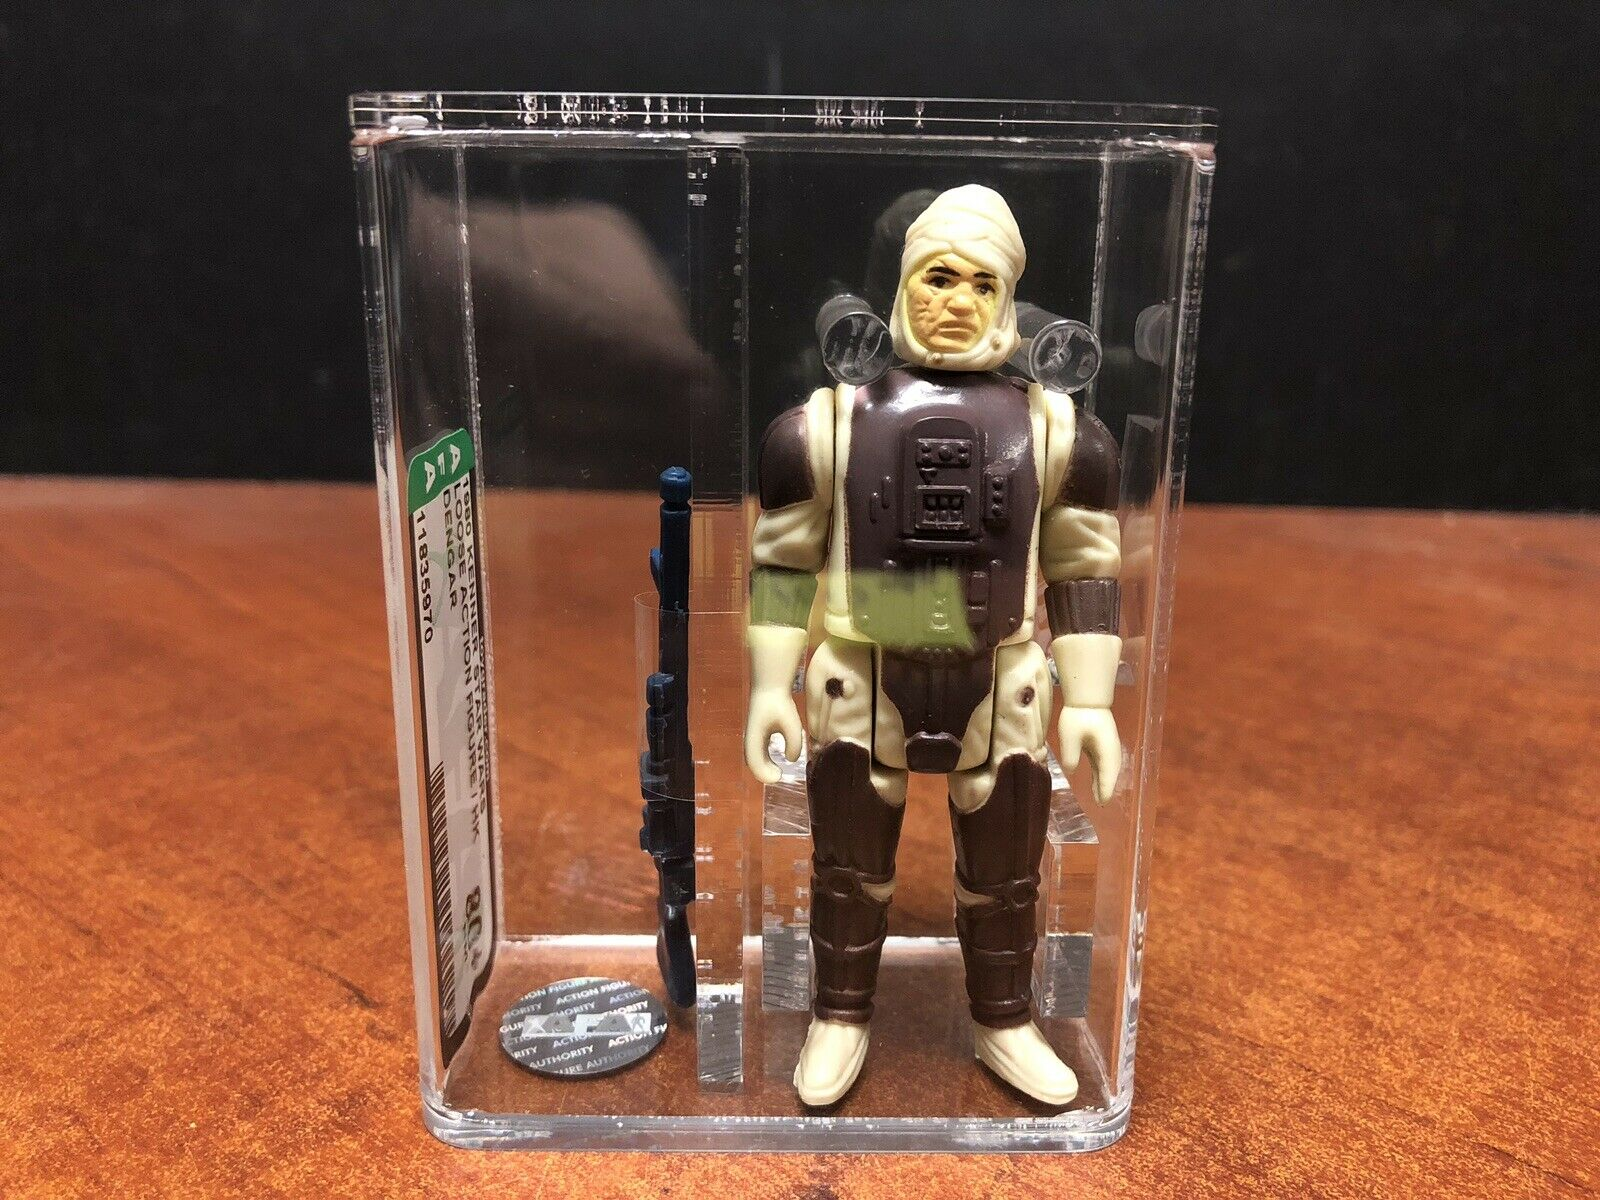 1980 Kenner Star Wars Dengar Loose AFA 80+ EMF3654